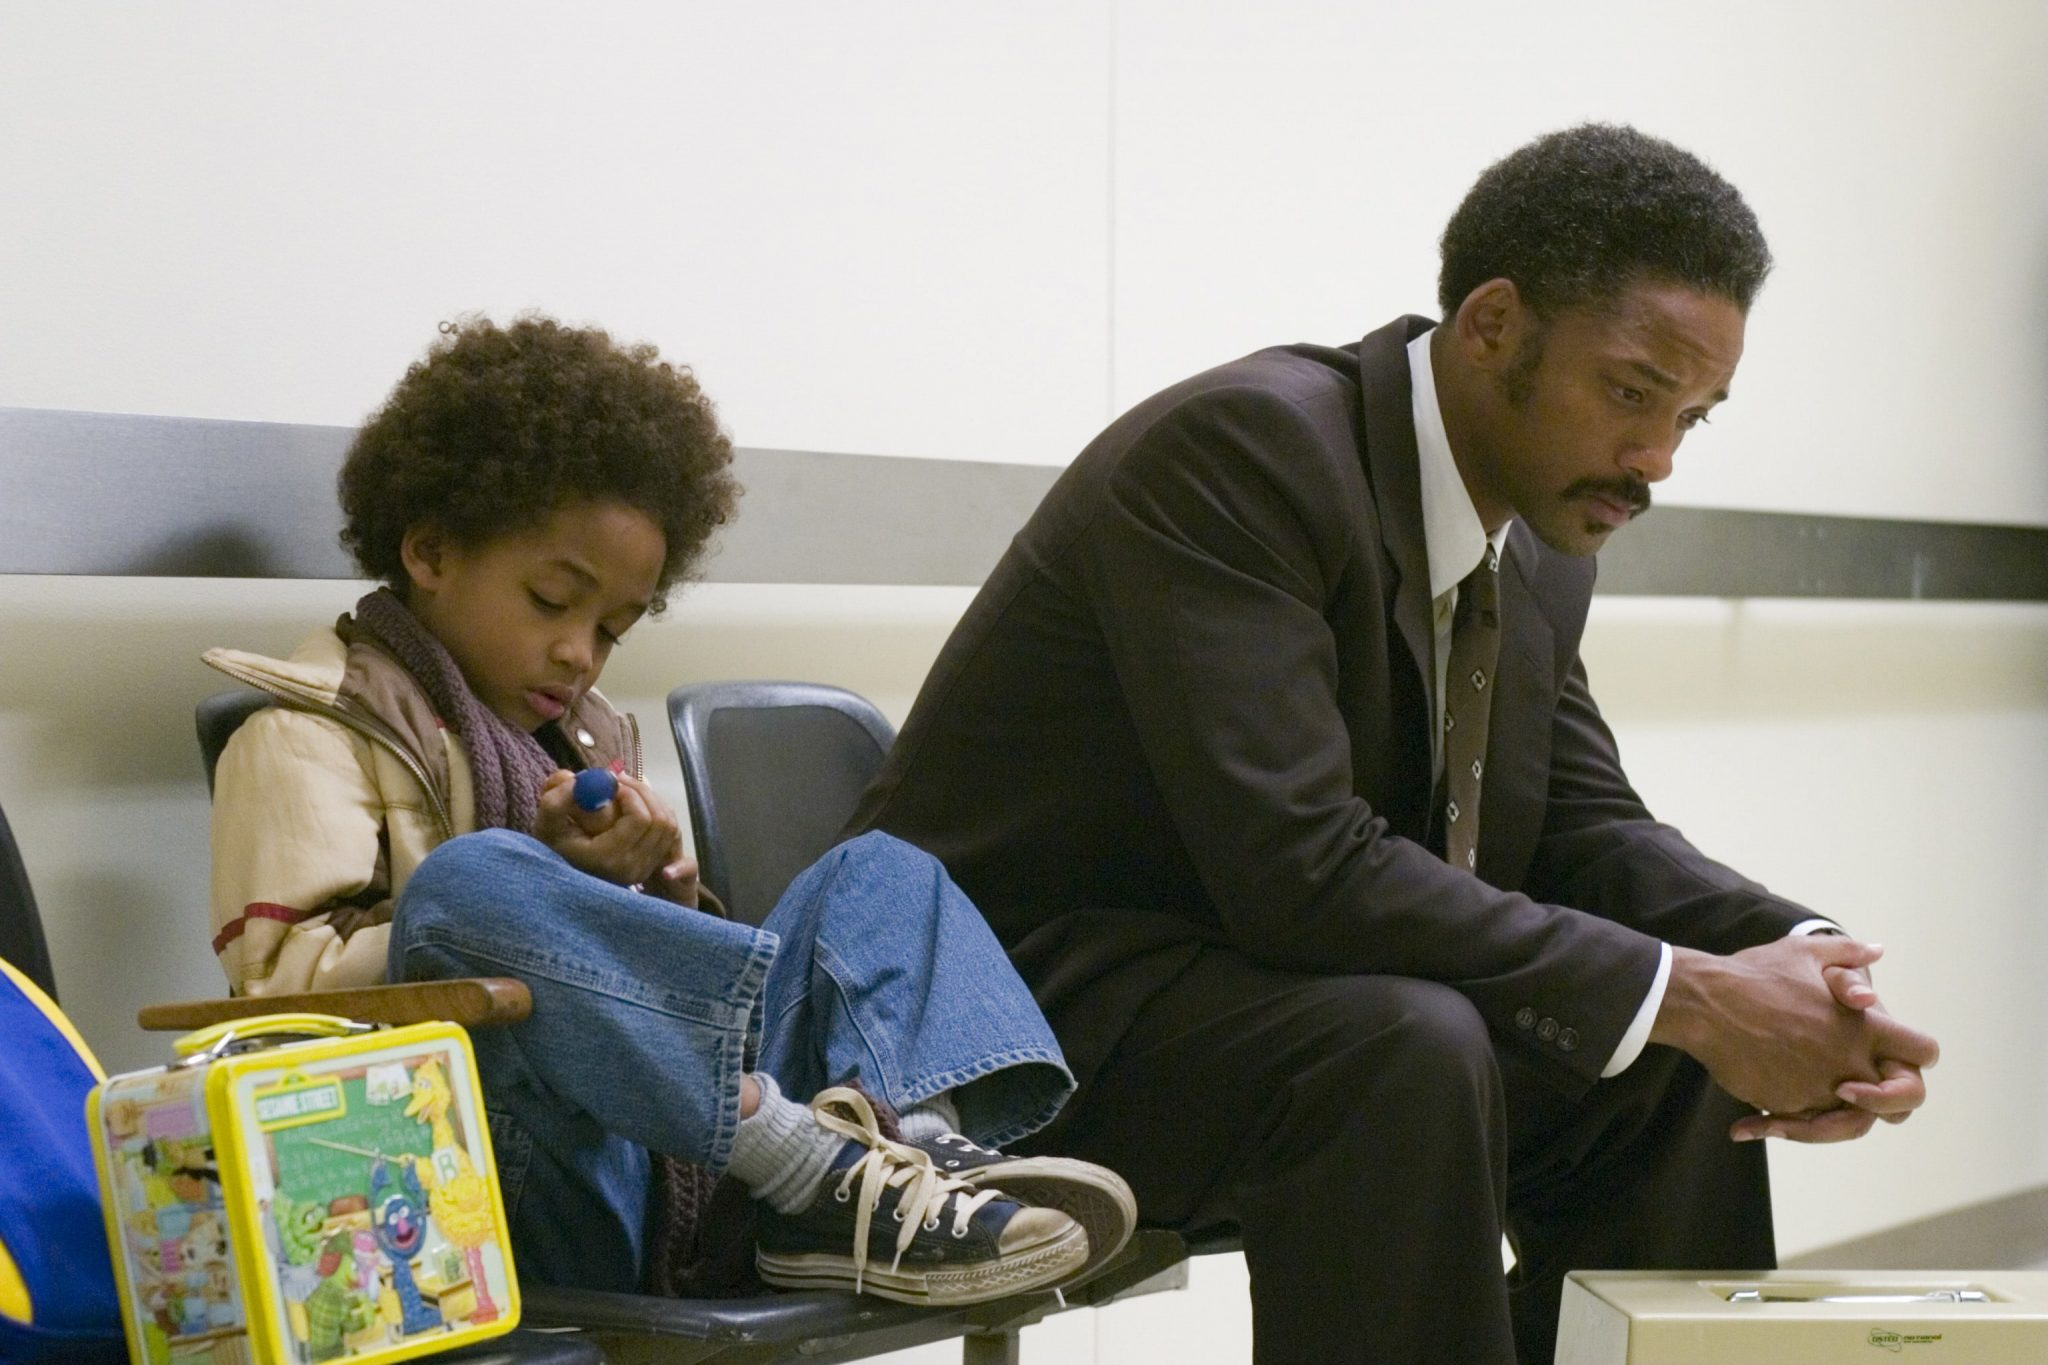 Monday Motivation: The Pursuit of Happyness